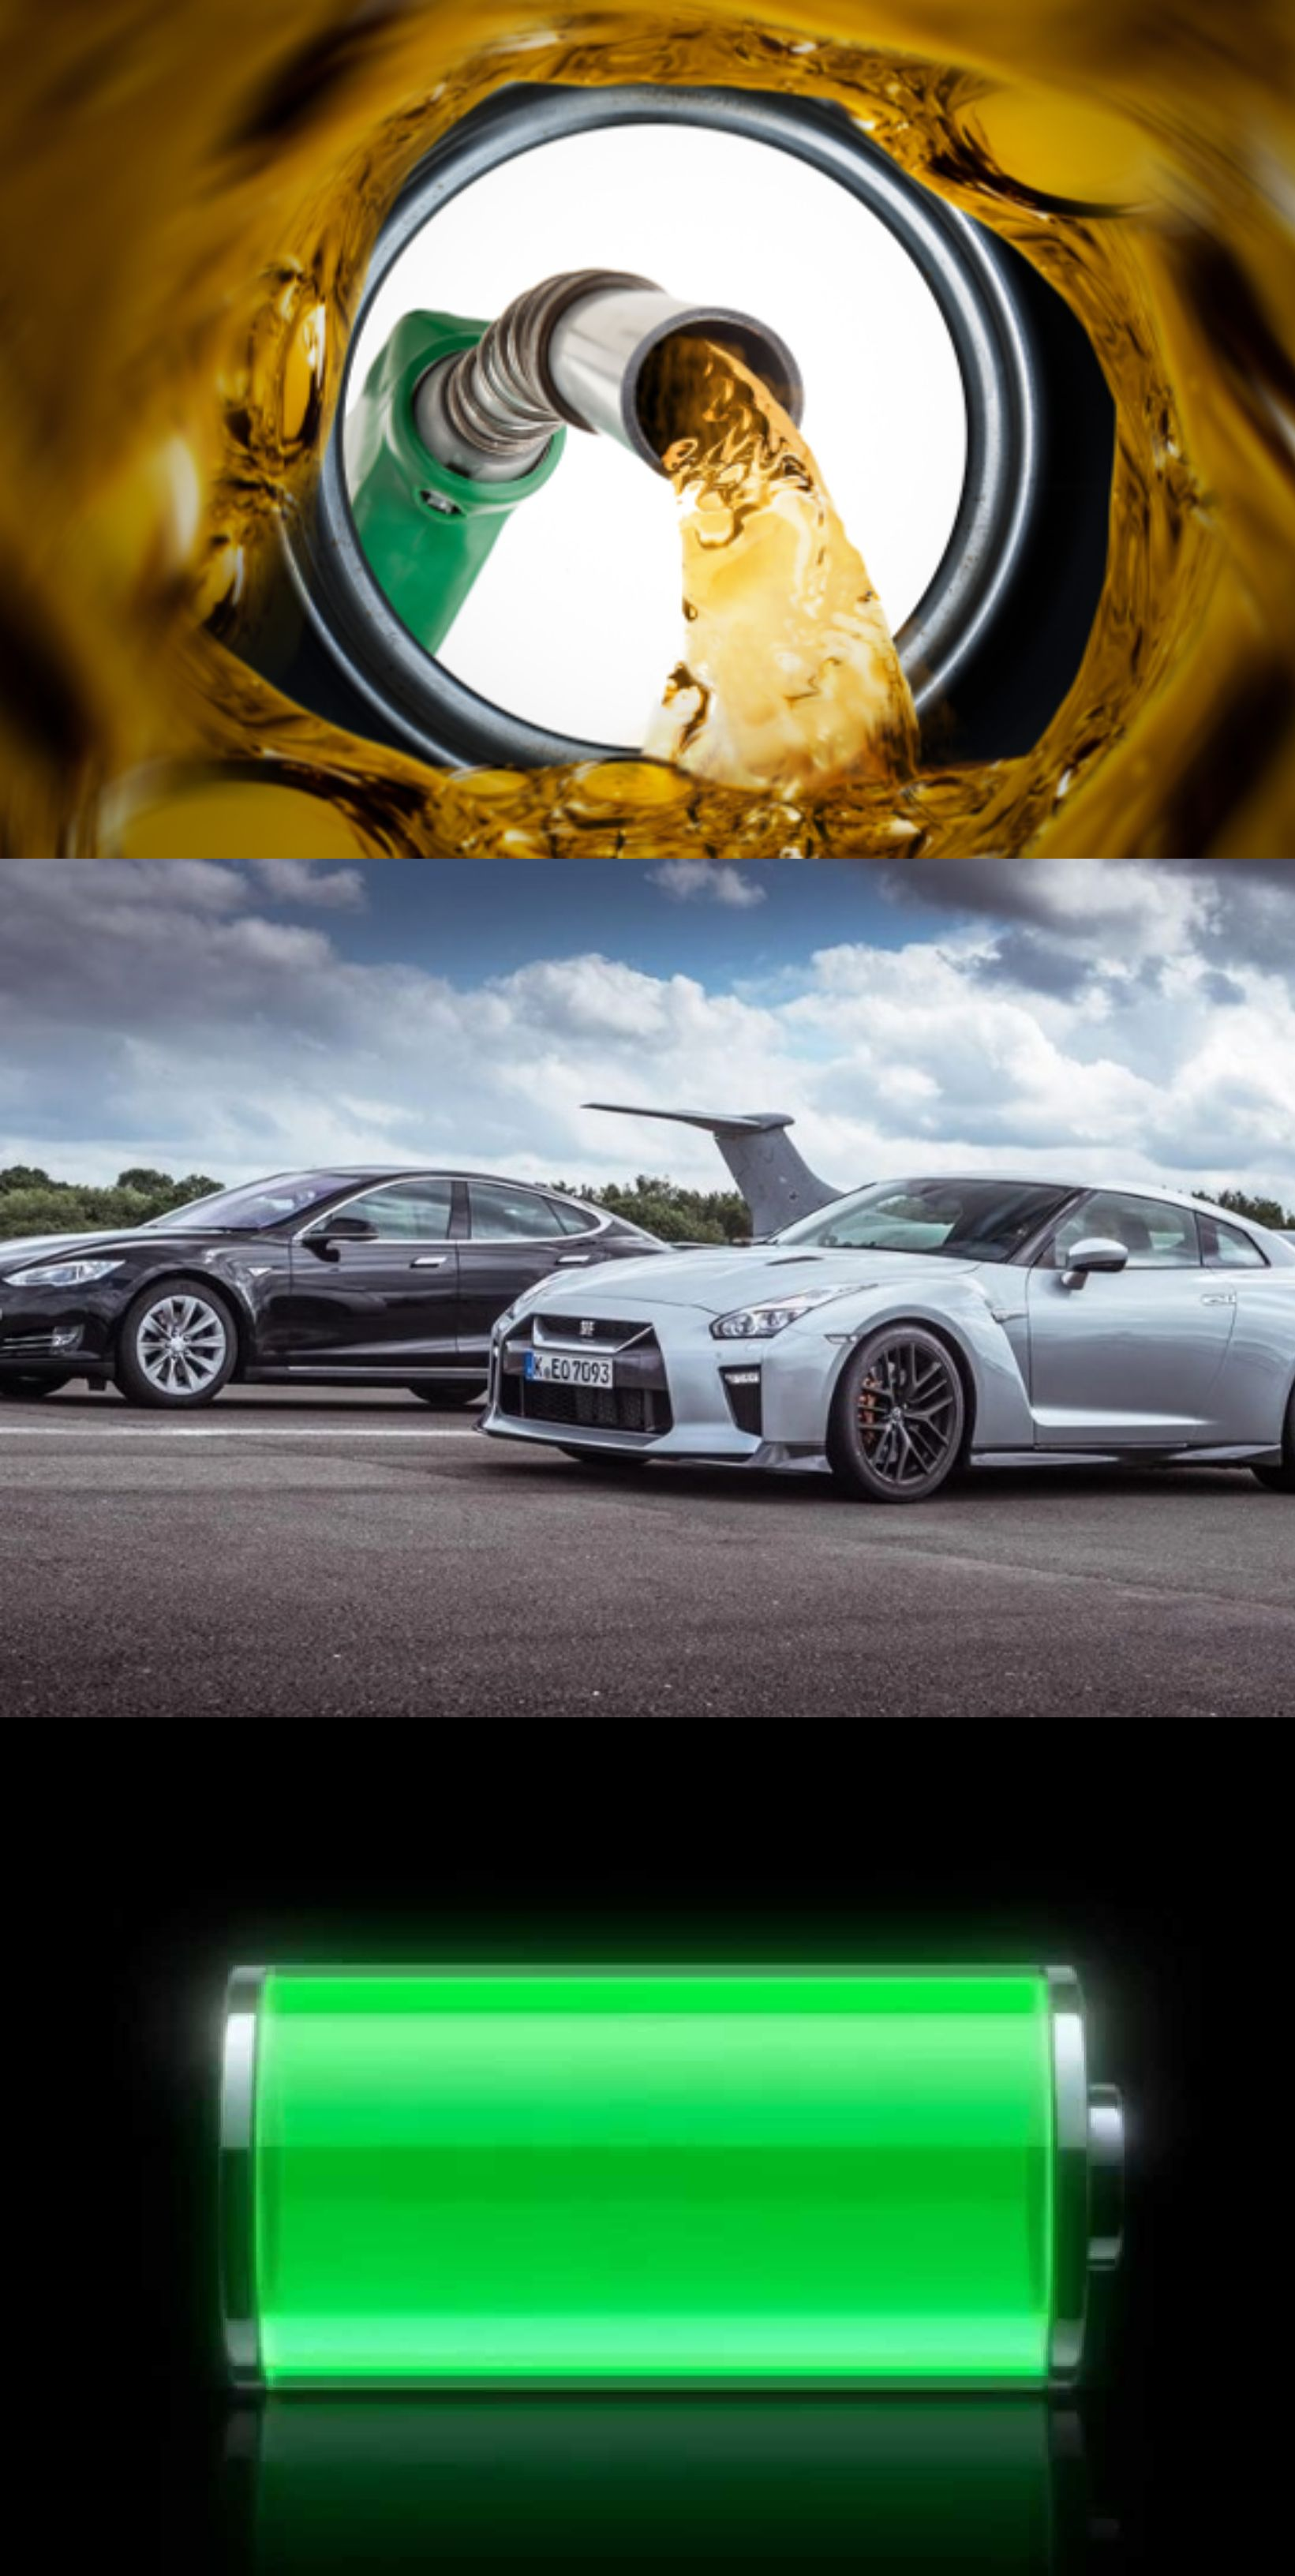 Tesla Vs Nissan Gtr The Ev And Ic Cars Are Totally Diffe Literally Two Worlds Starting From Refueling Driving Experience